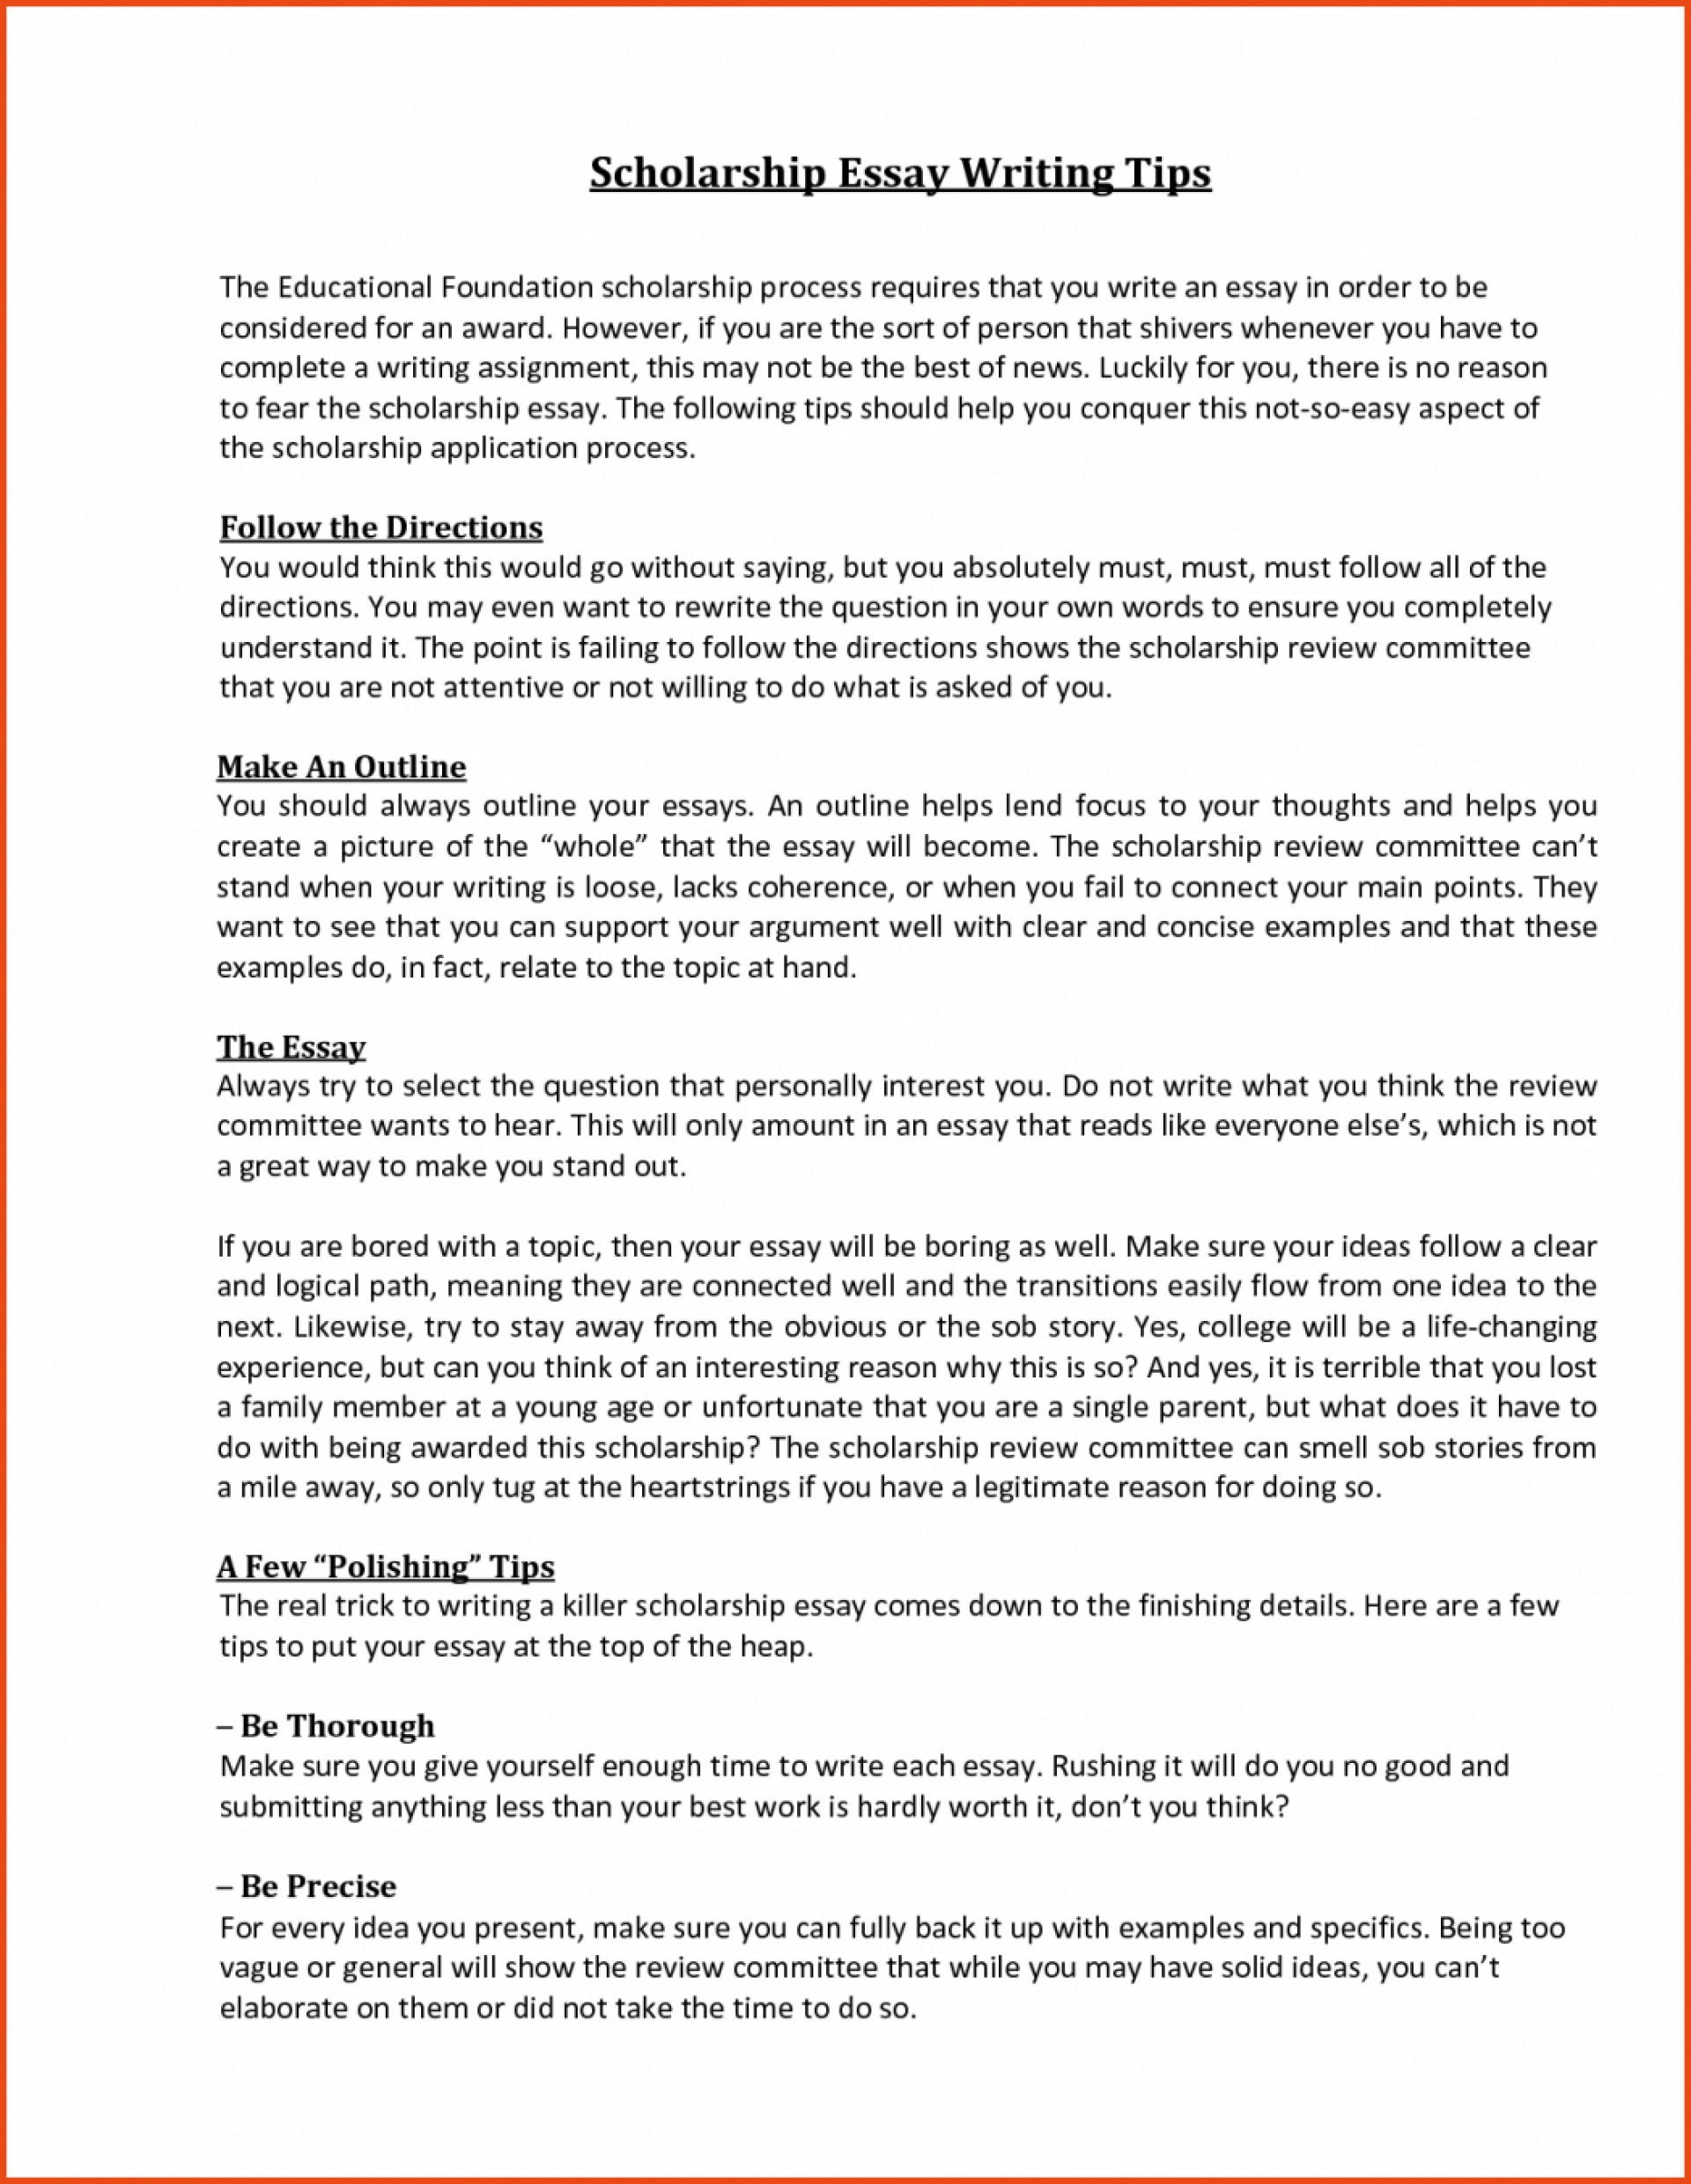 015 Pay For Essays Five Typical Mistakes When Writing Academic Paper Checker Someone To Write Your Essay You Ideas Collection Scholarship Awesome It Can 1048x1354 Dreaded Cheap Uk Magazines That 1920